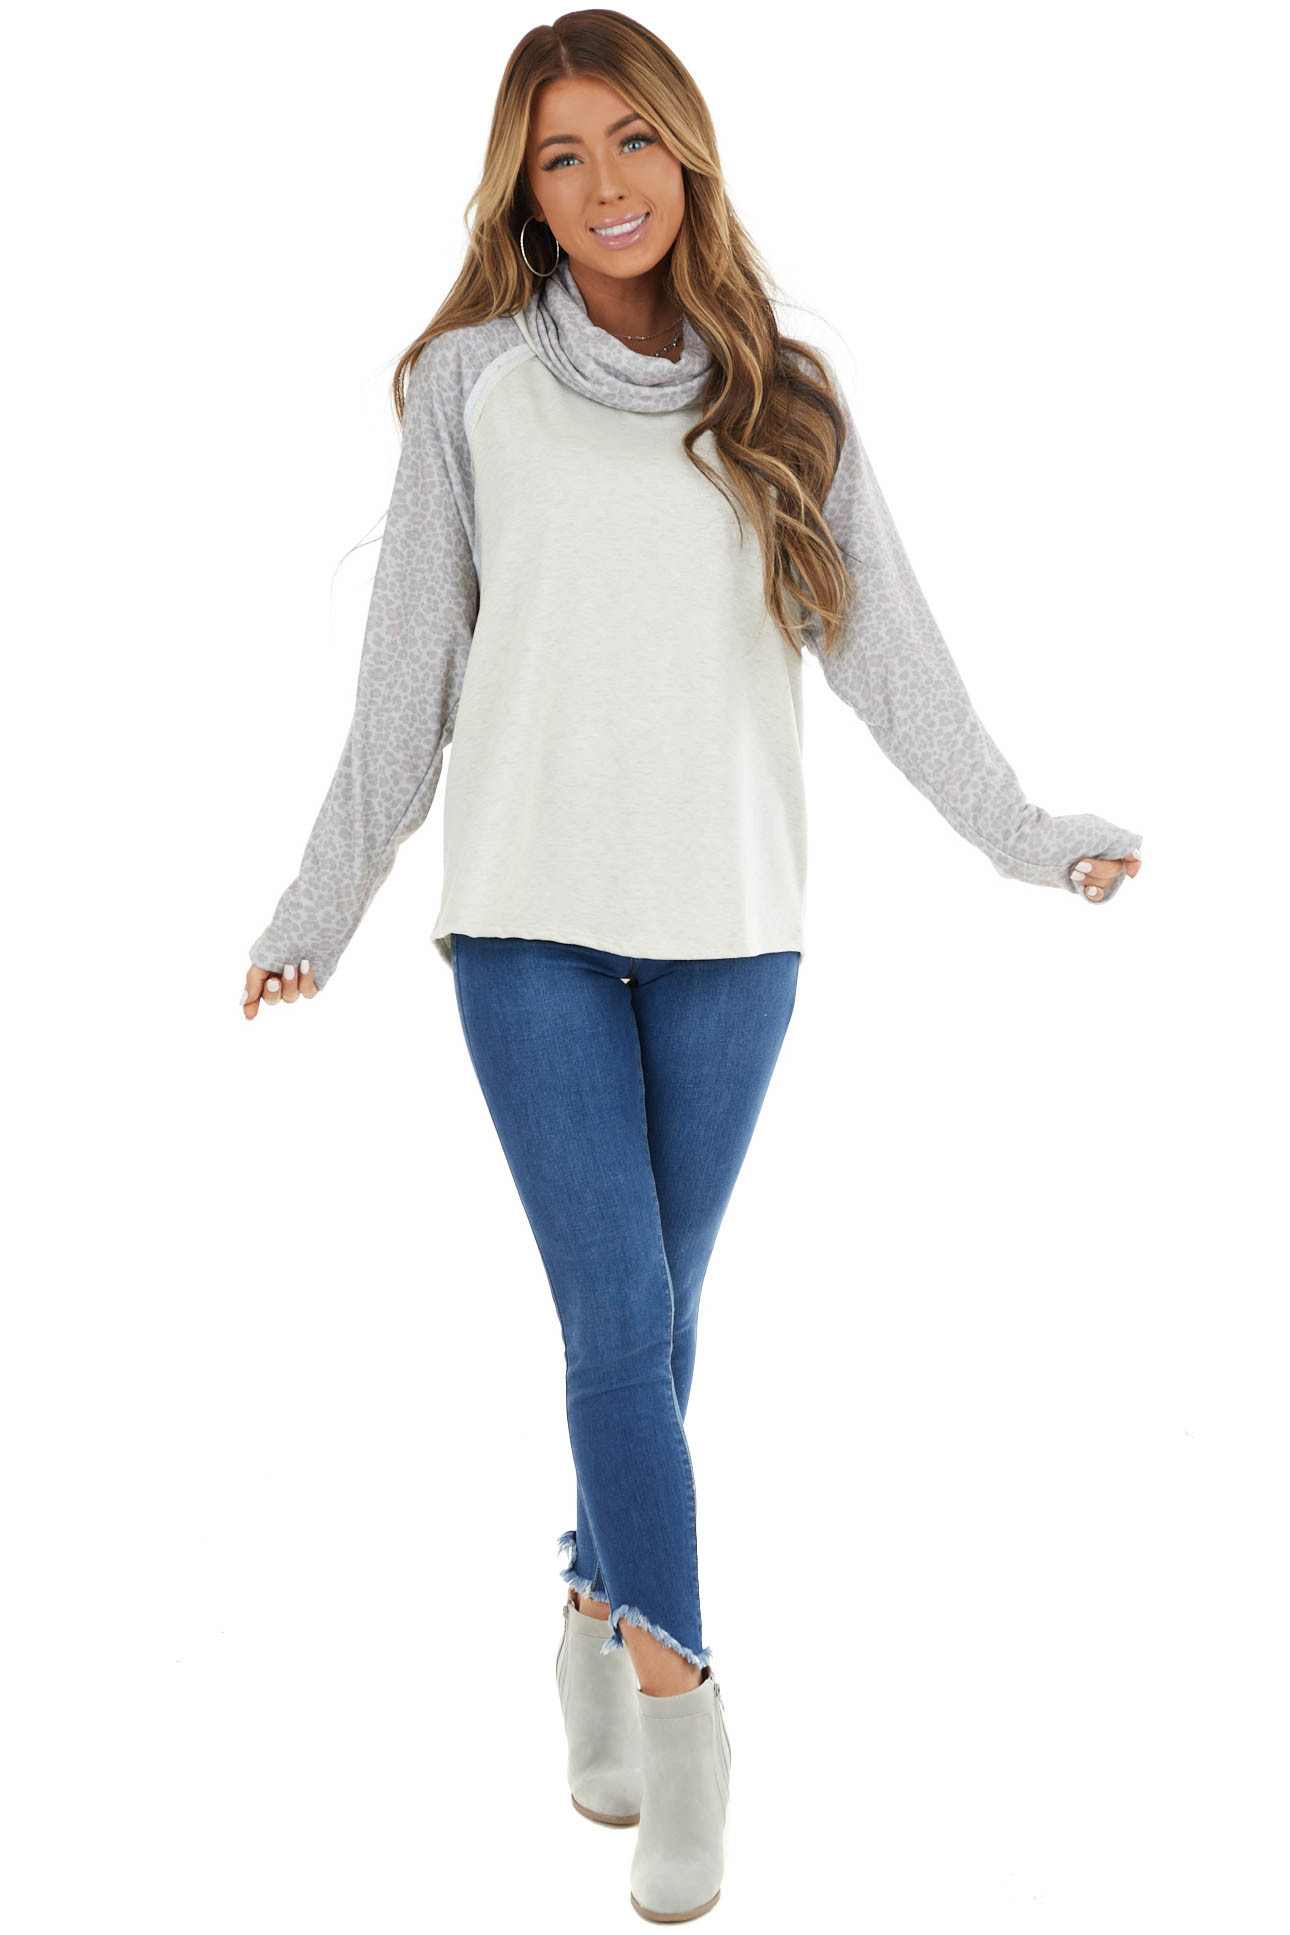 Oatmeal Raglan Top with Contrast Sleeves and Cowl Neck